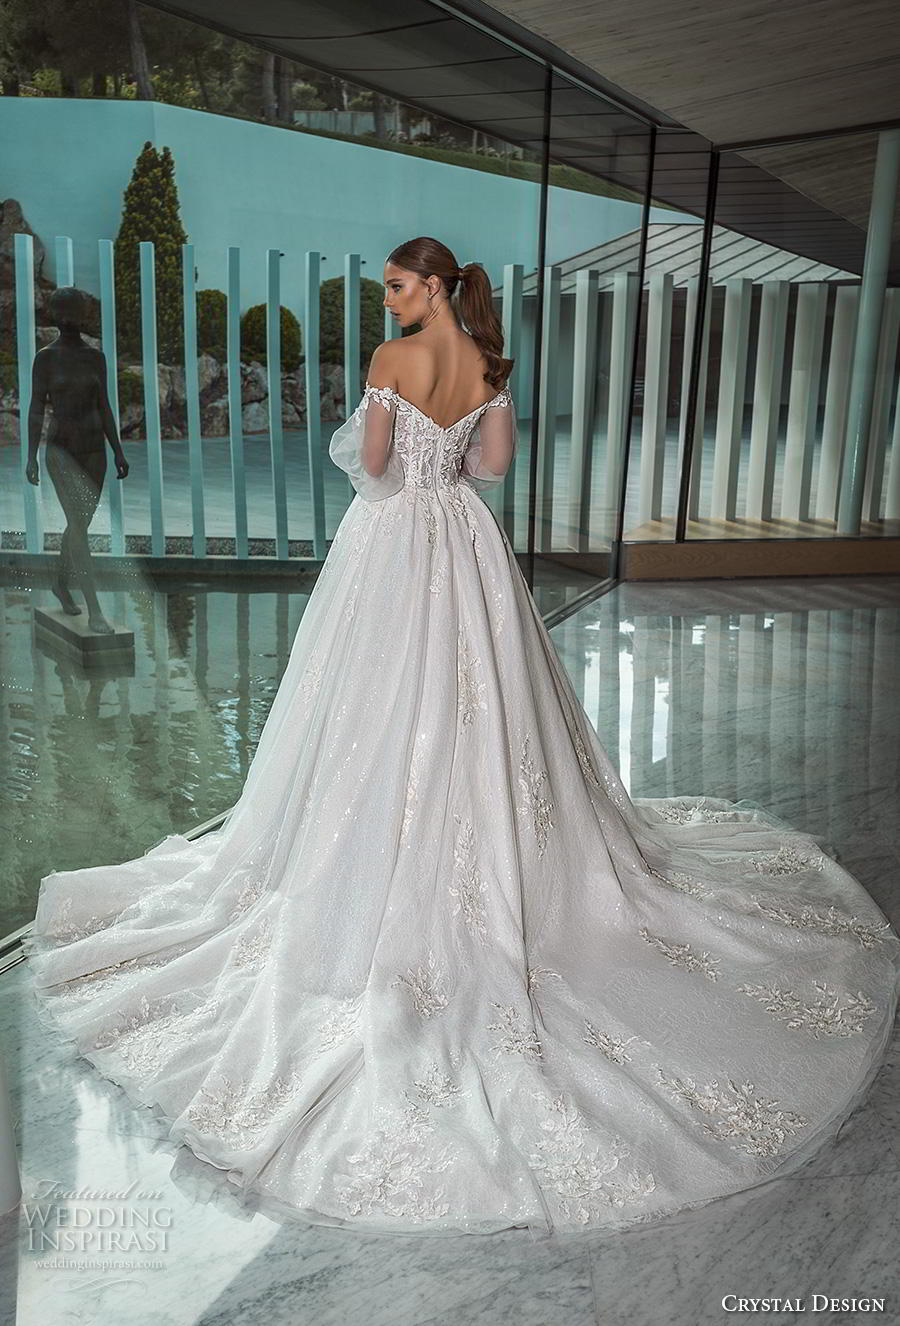 crystal design 2019 bridal long bishop sleeves off the shoulder sweetheart neckline heavily embellished bodice princess romantic ball gown a  line wedding dress royal train (2) bv